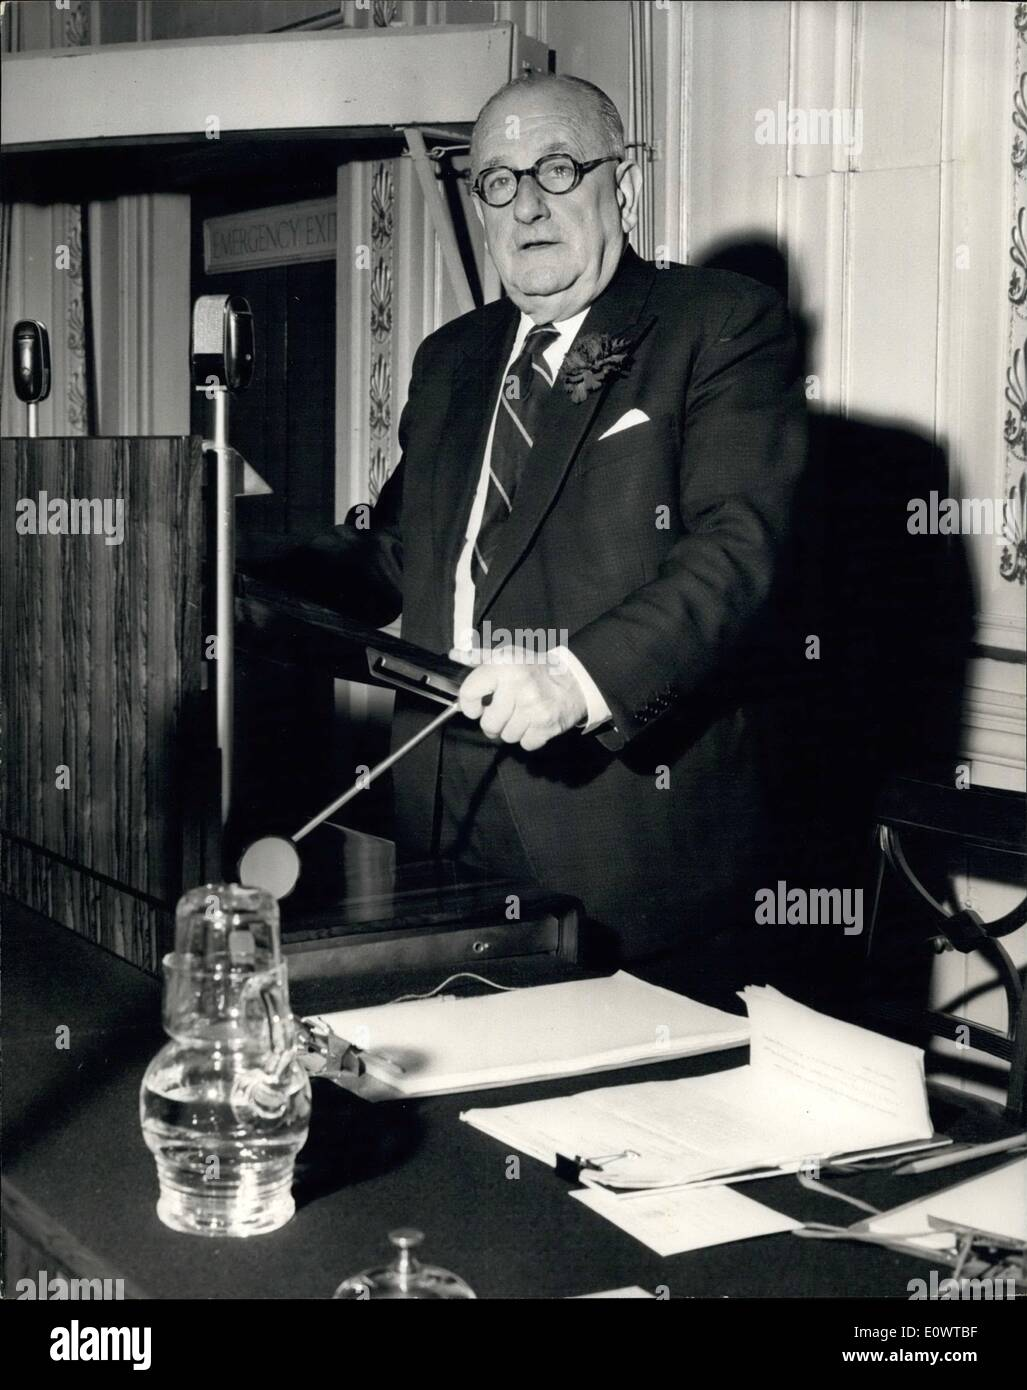 Feb. 26, 1964 - 26.2.64 Herbert Wilcox addresses the conference. The guest speaker at the Conference of the Royal - Stock Image